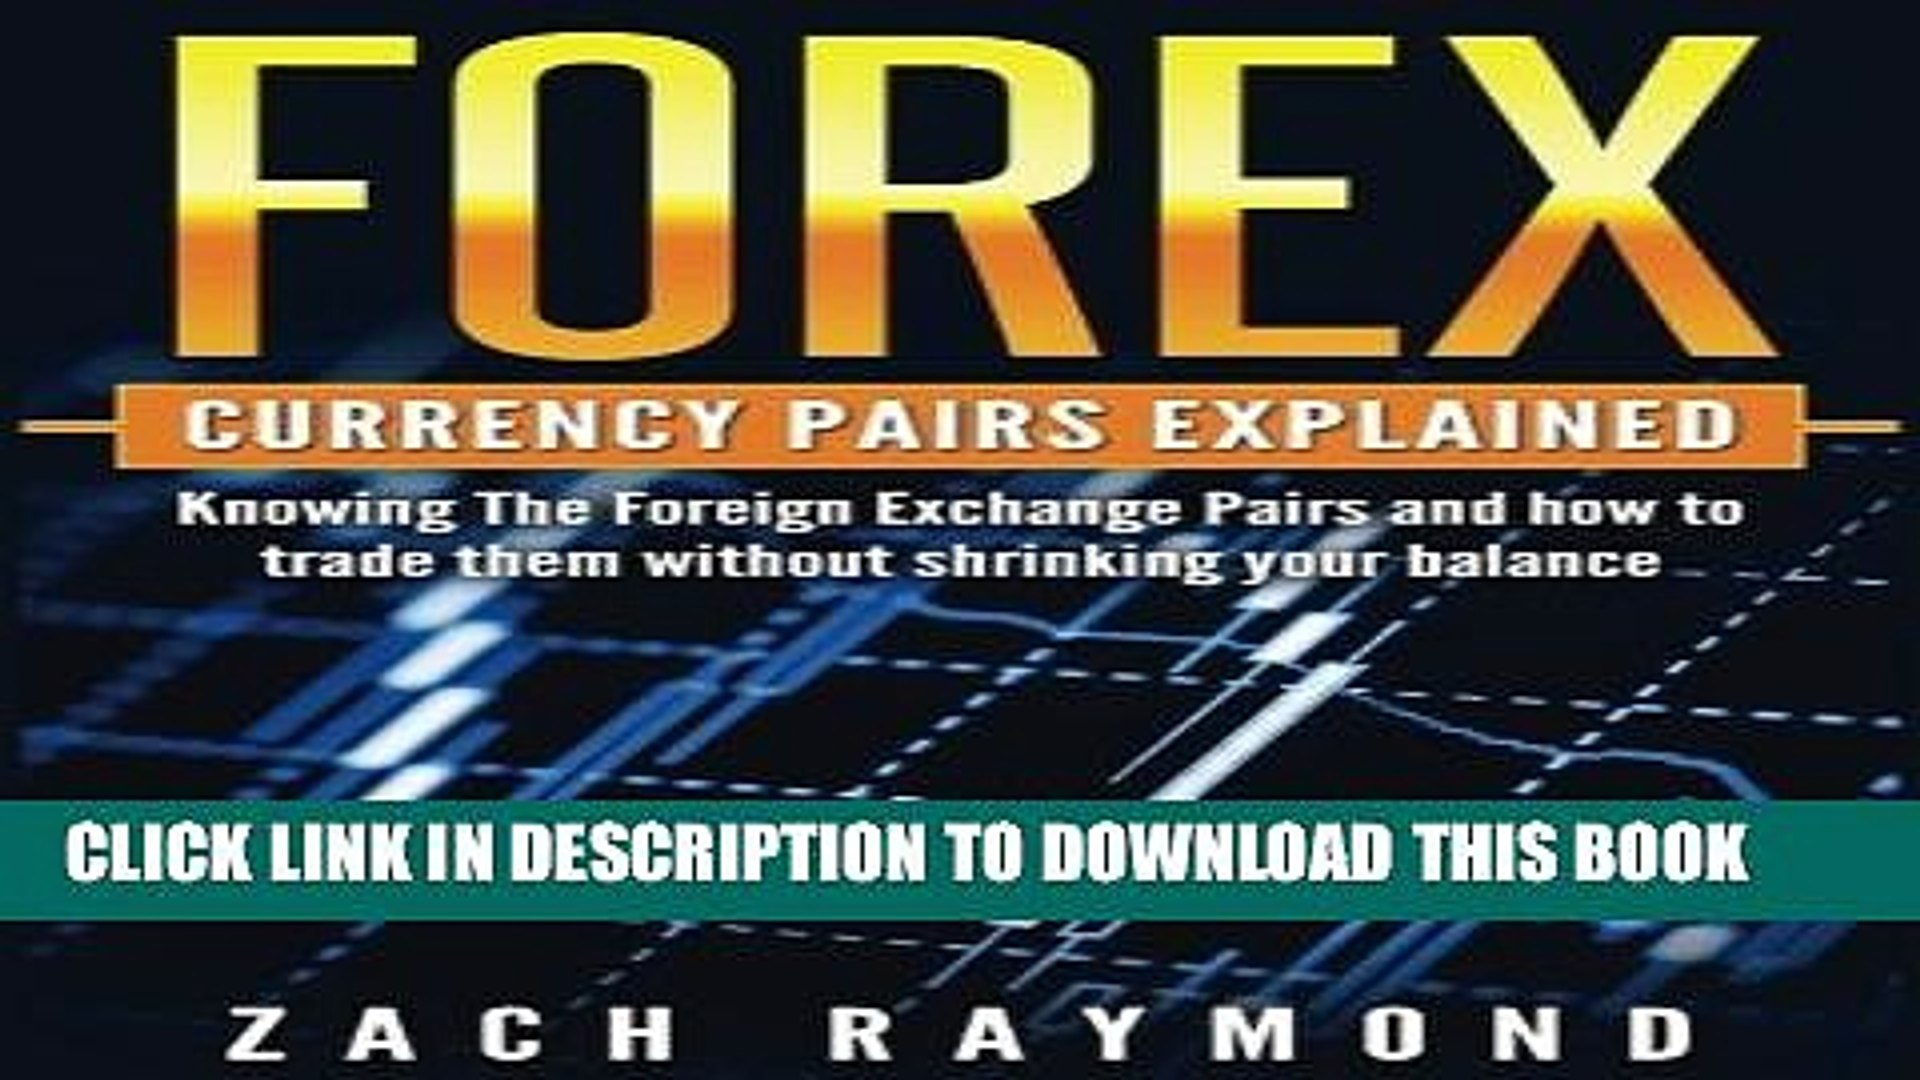 Pdf Forex Currency Pairs Explained Knowing The Foreign Exchange And How To Trade Them